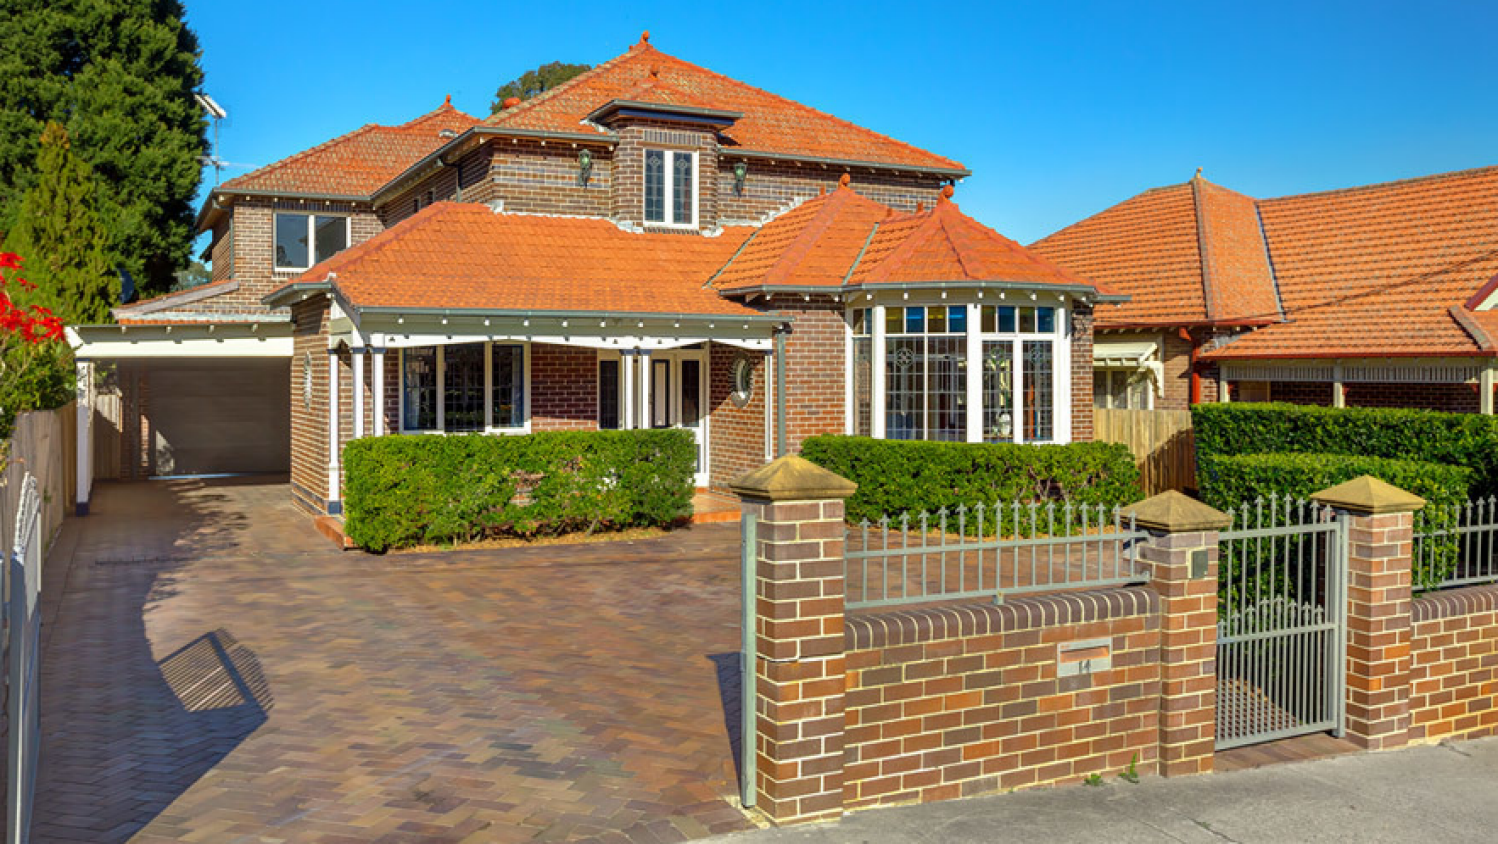 Clearance Rate Sydney Sydney Auction Clearance Rate Below 70 Per Cent For First